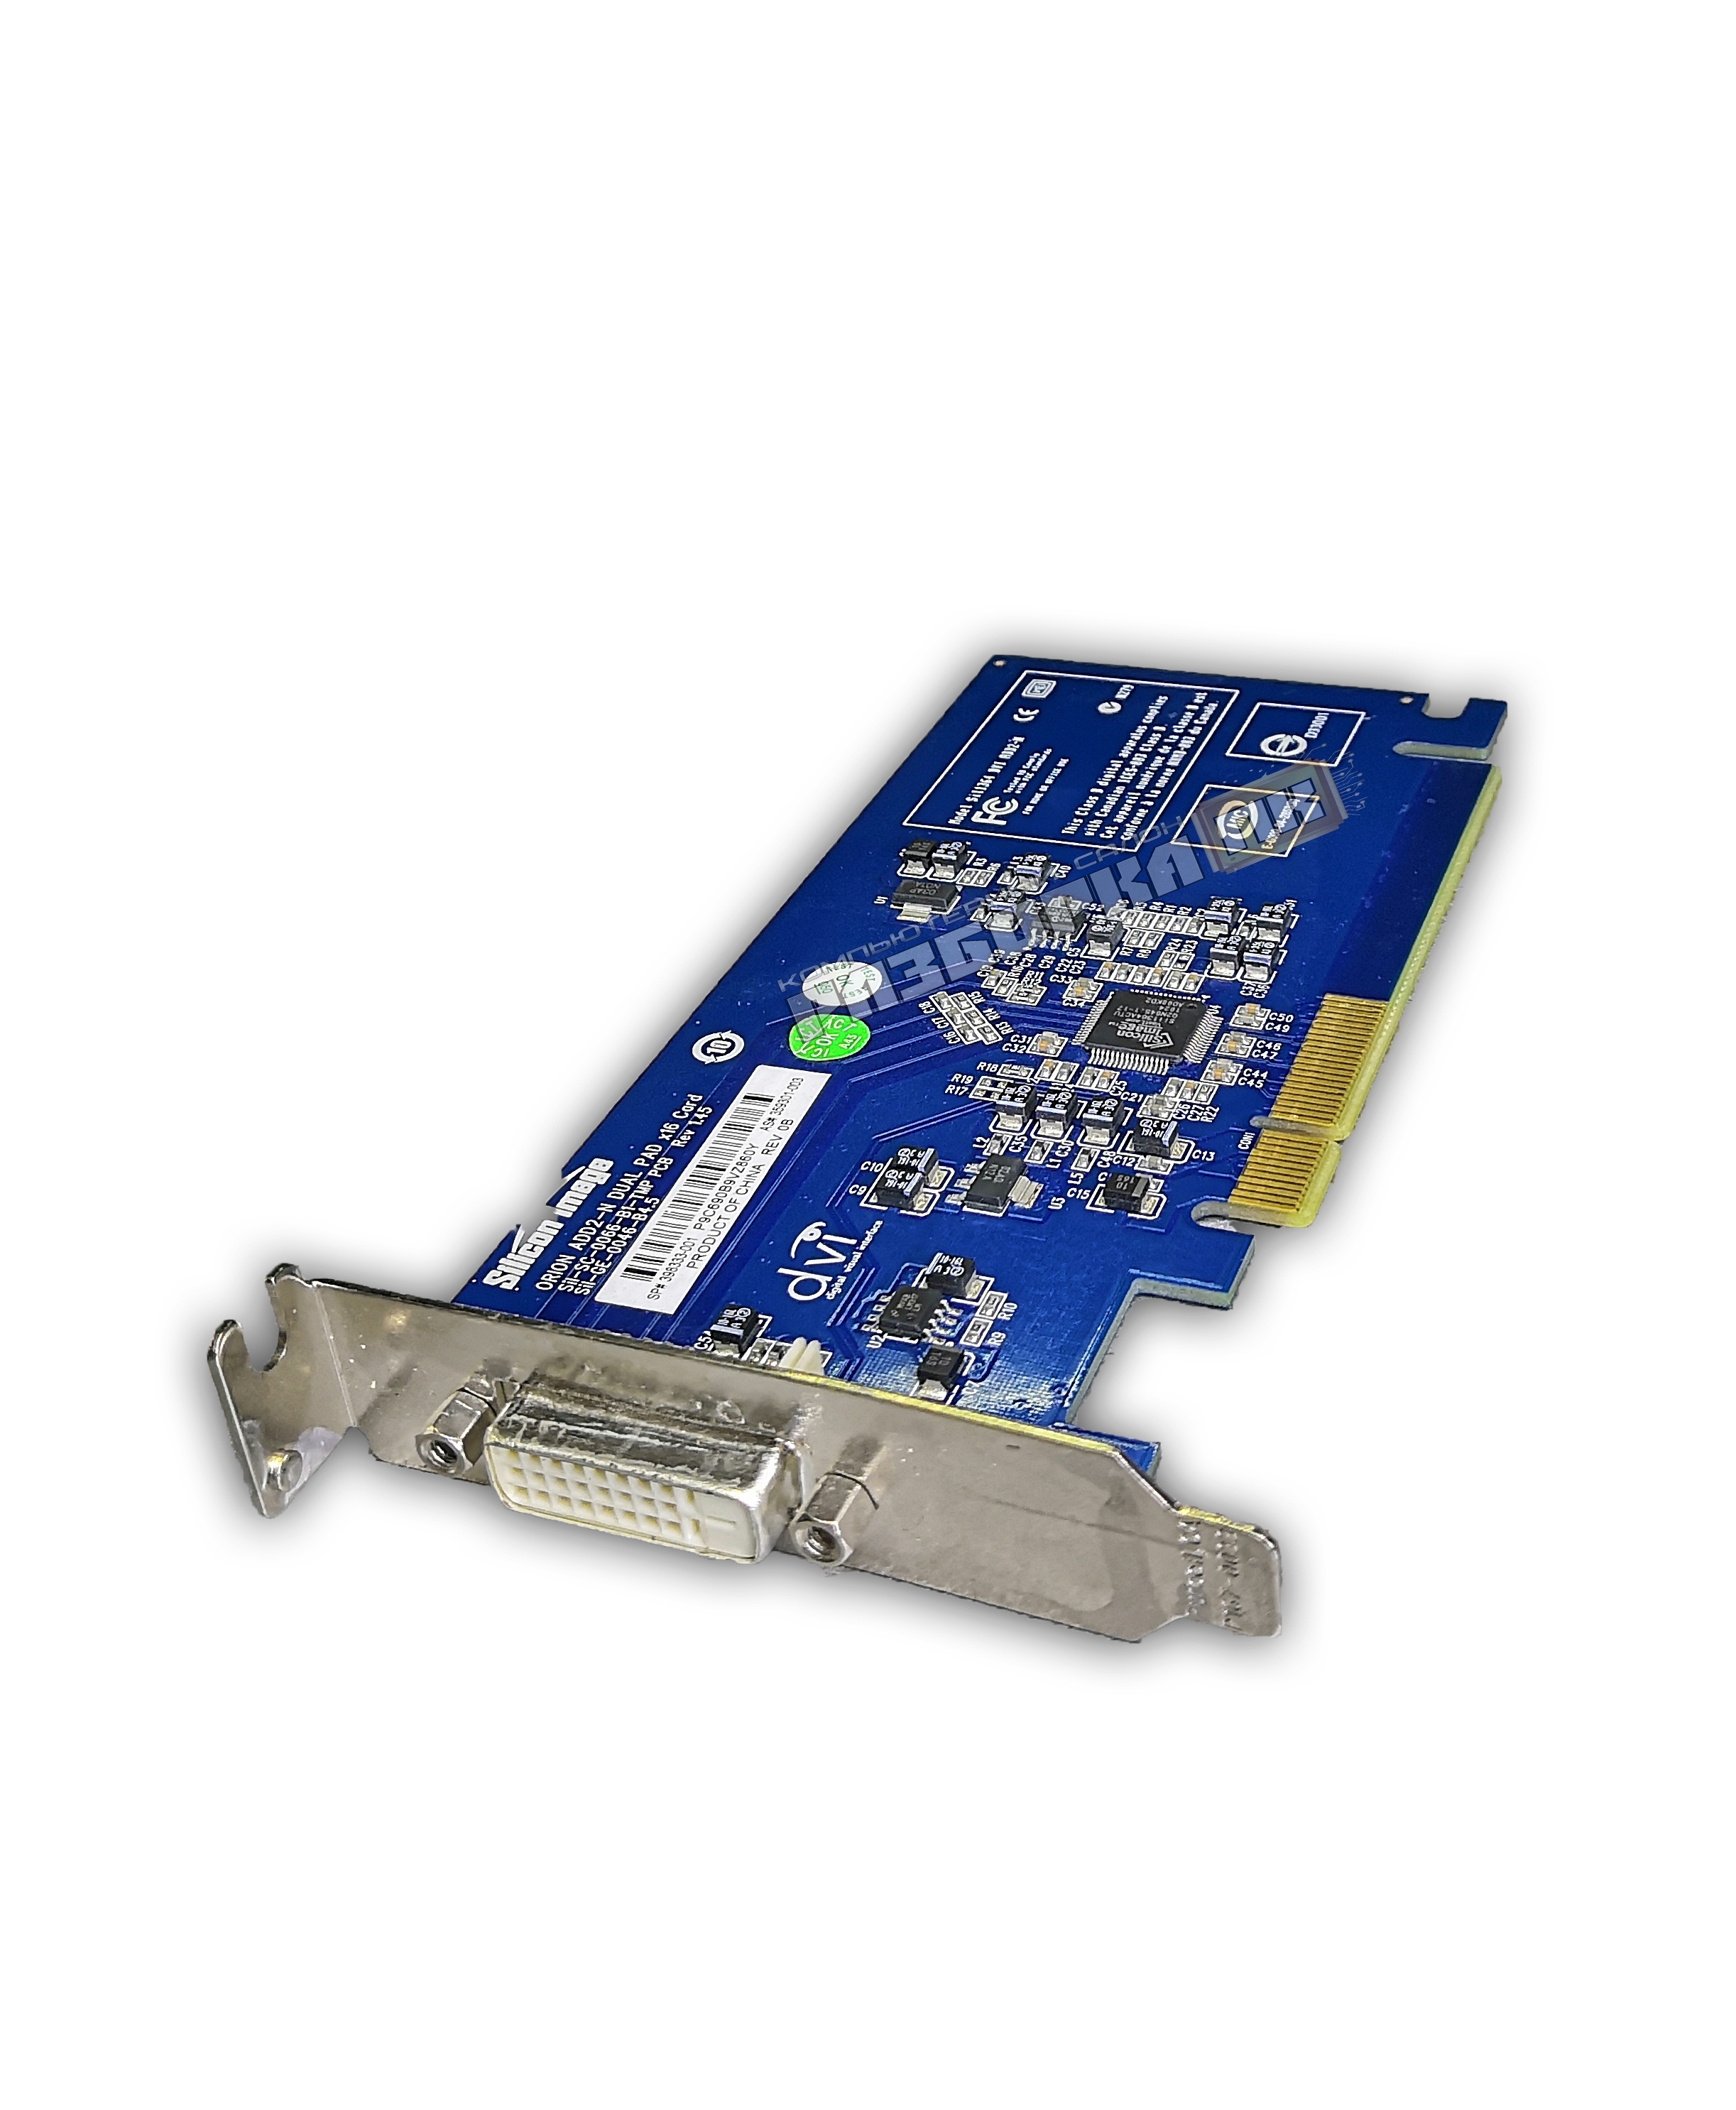 Видеоплата PCI-E Silicon Image Sil1364 DVI ADD2-N